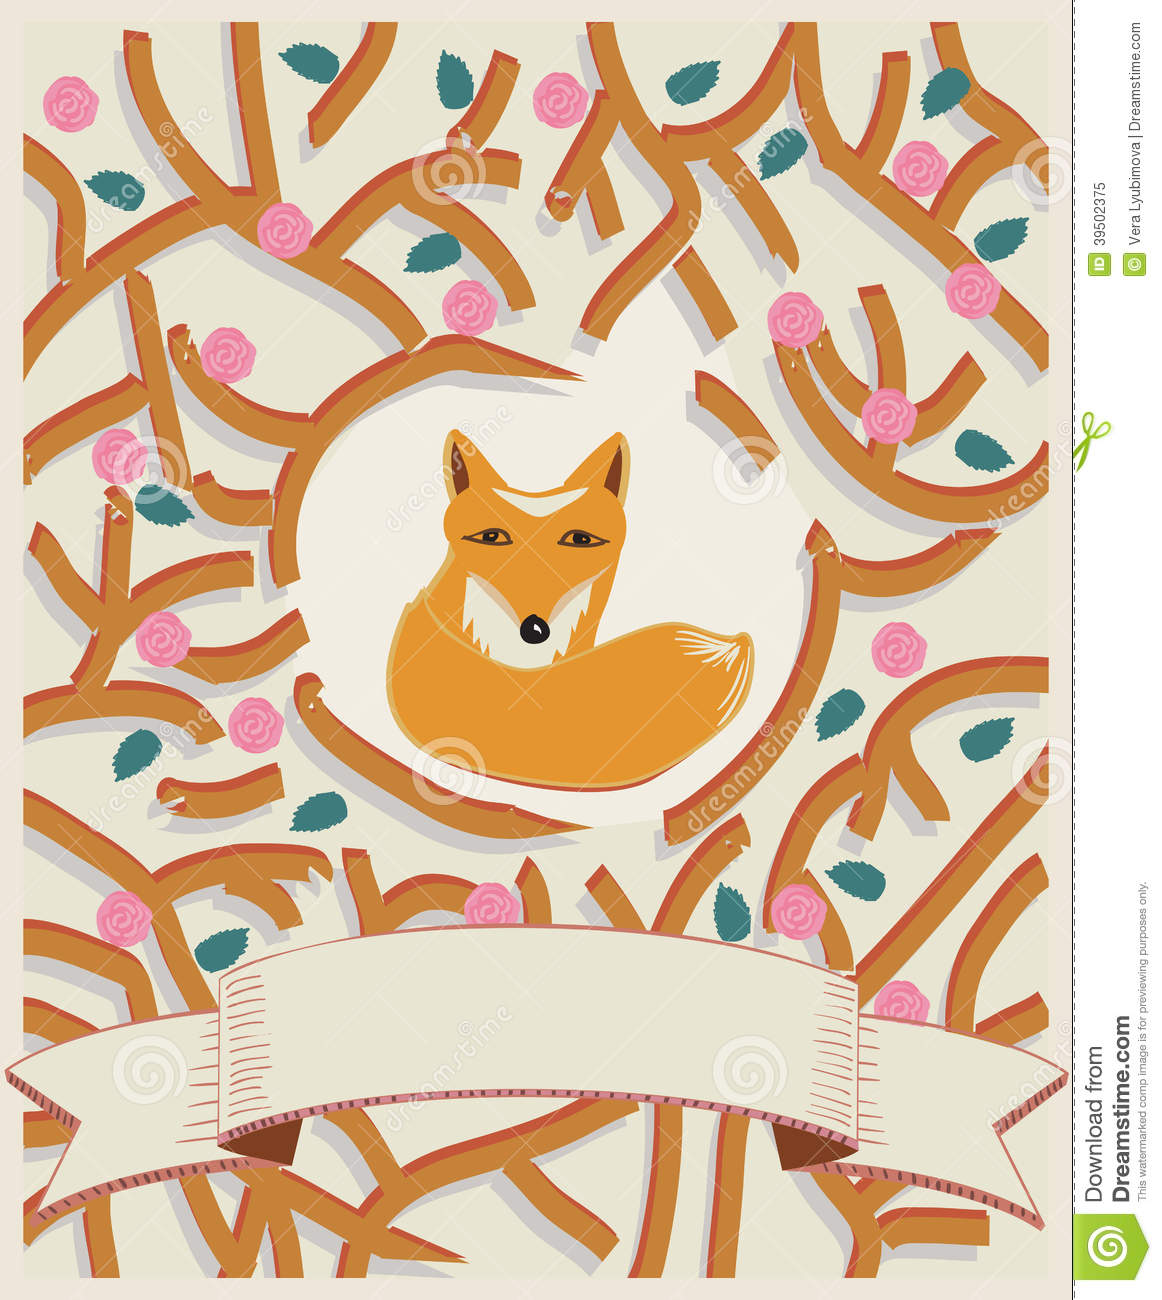 Little fox in a forest card design